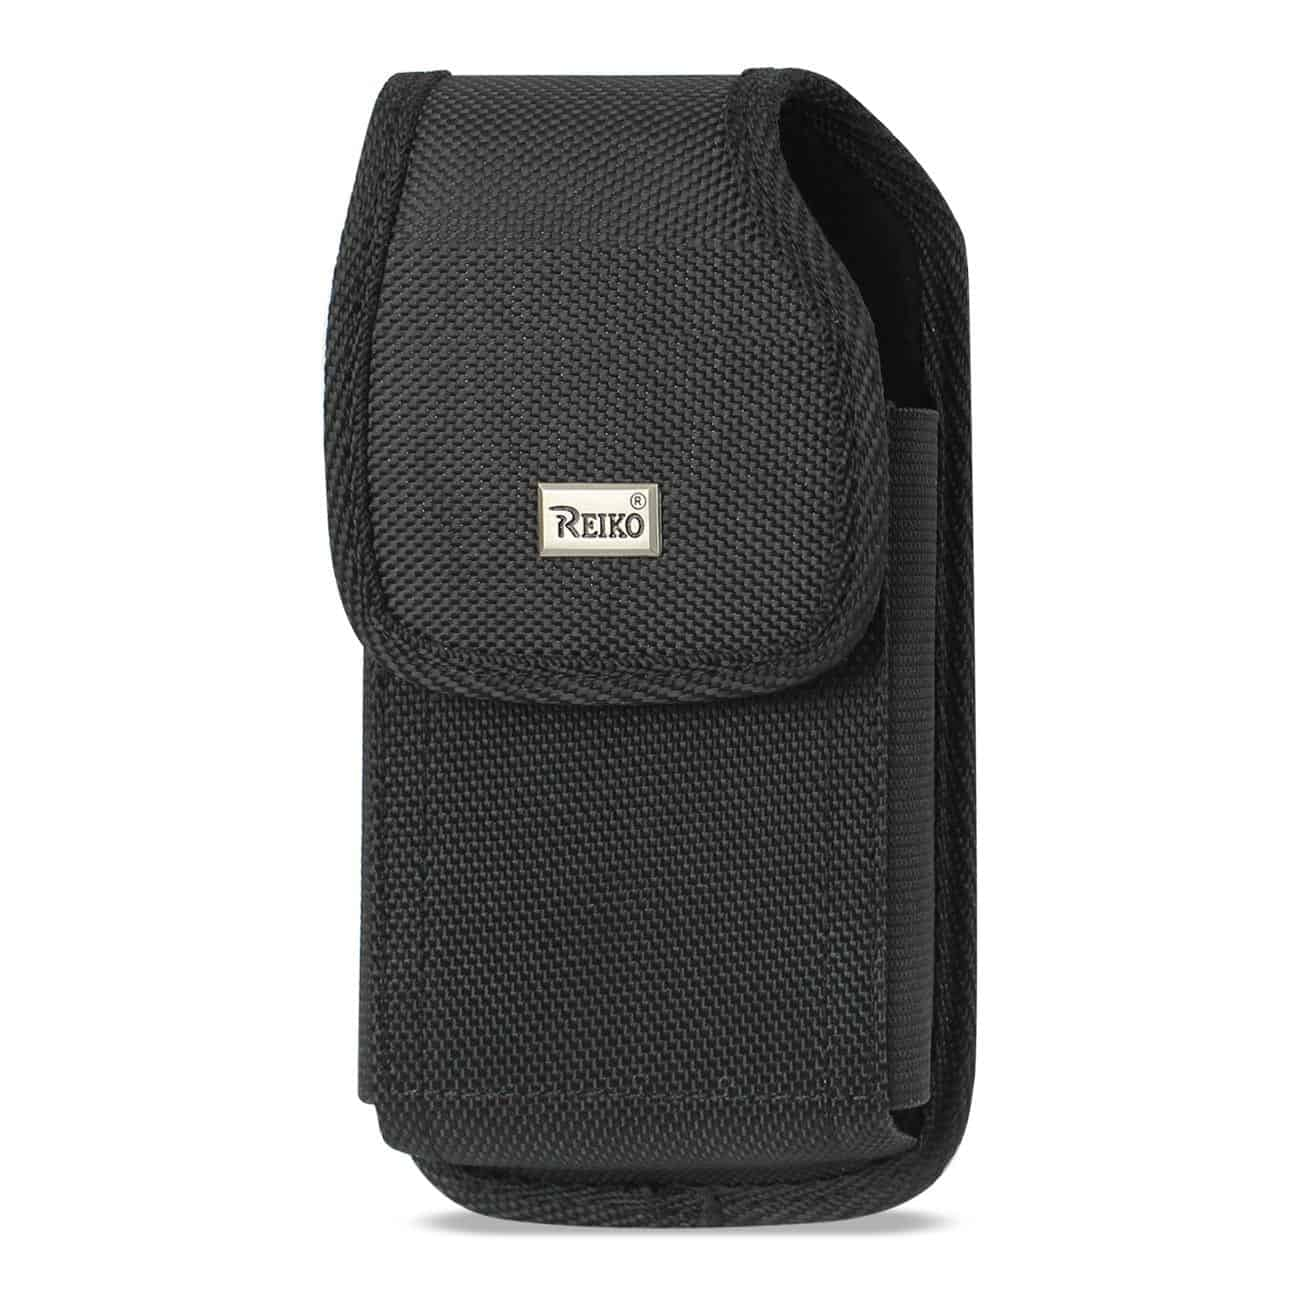 Vertical Rugged Pouch With Metal Belt Clip In Black (7.0X3.9X0.7 Inches)